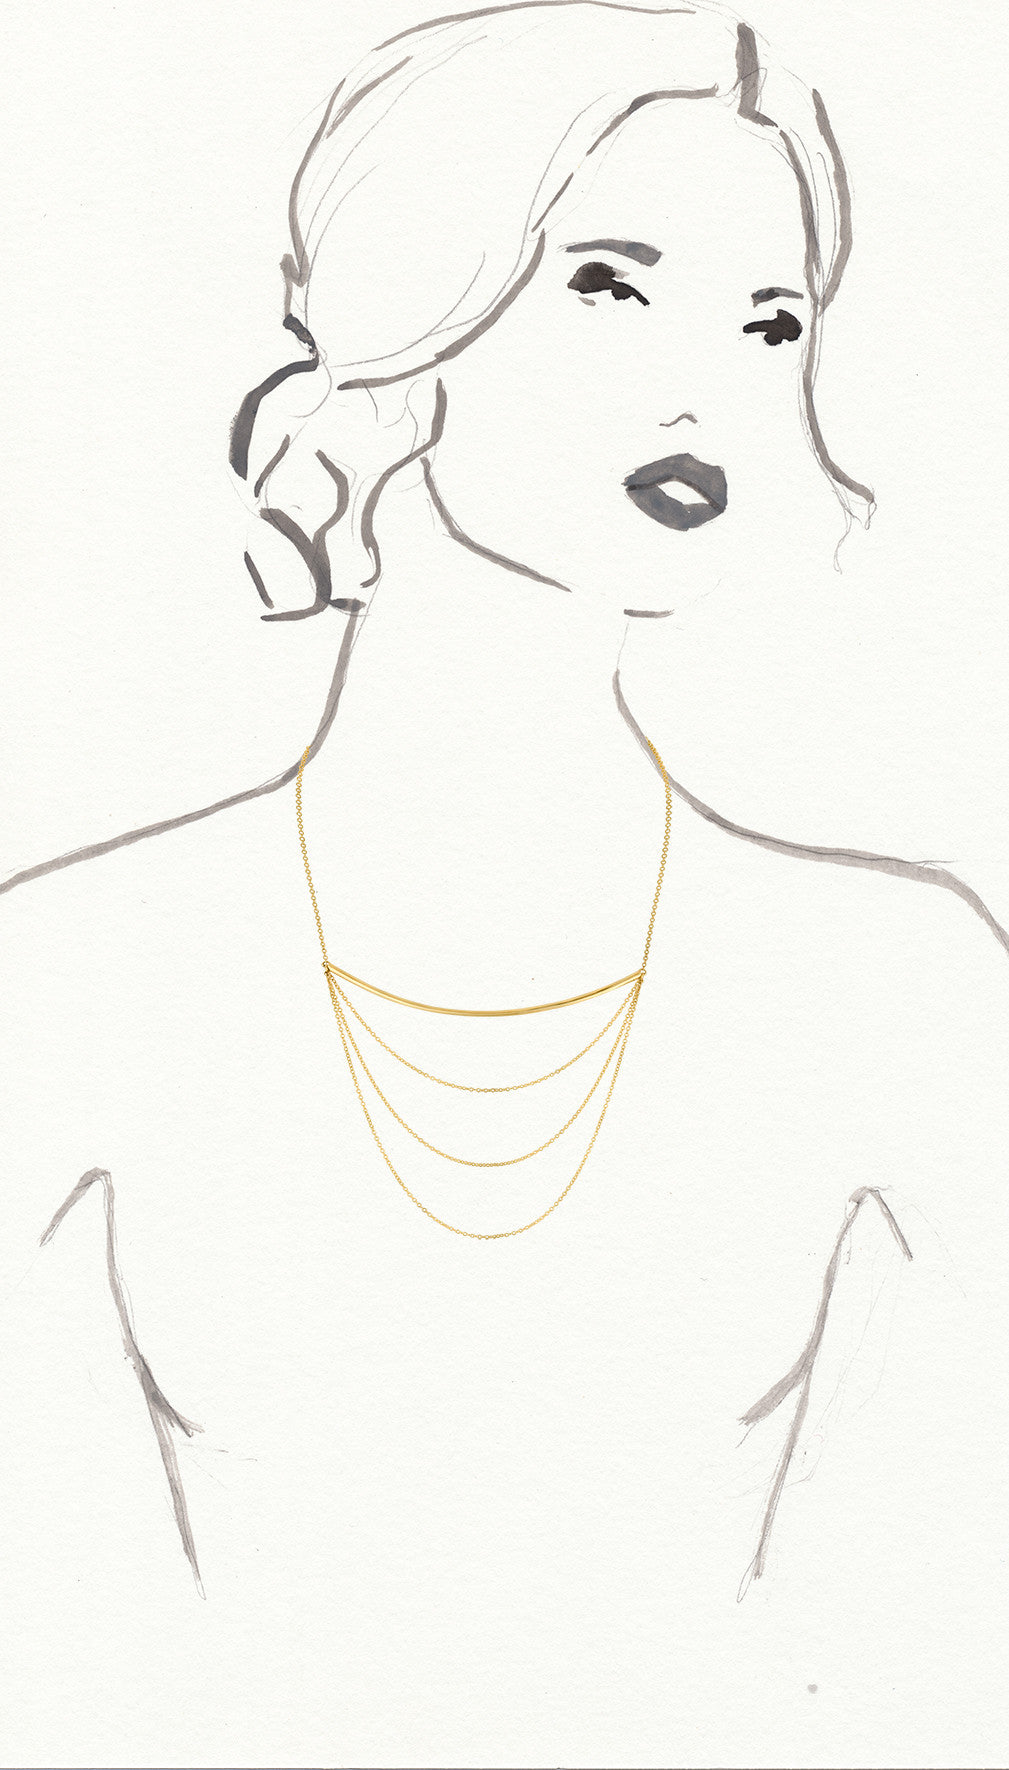 Gold Beam and Three Chain Necklace